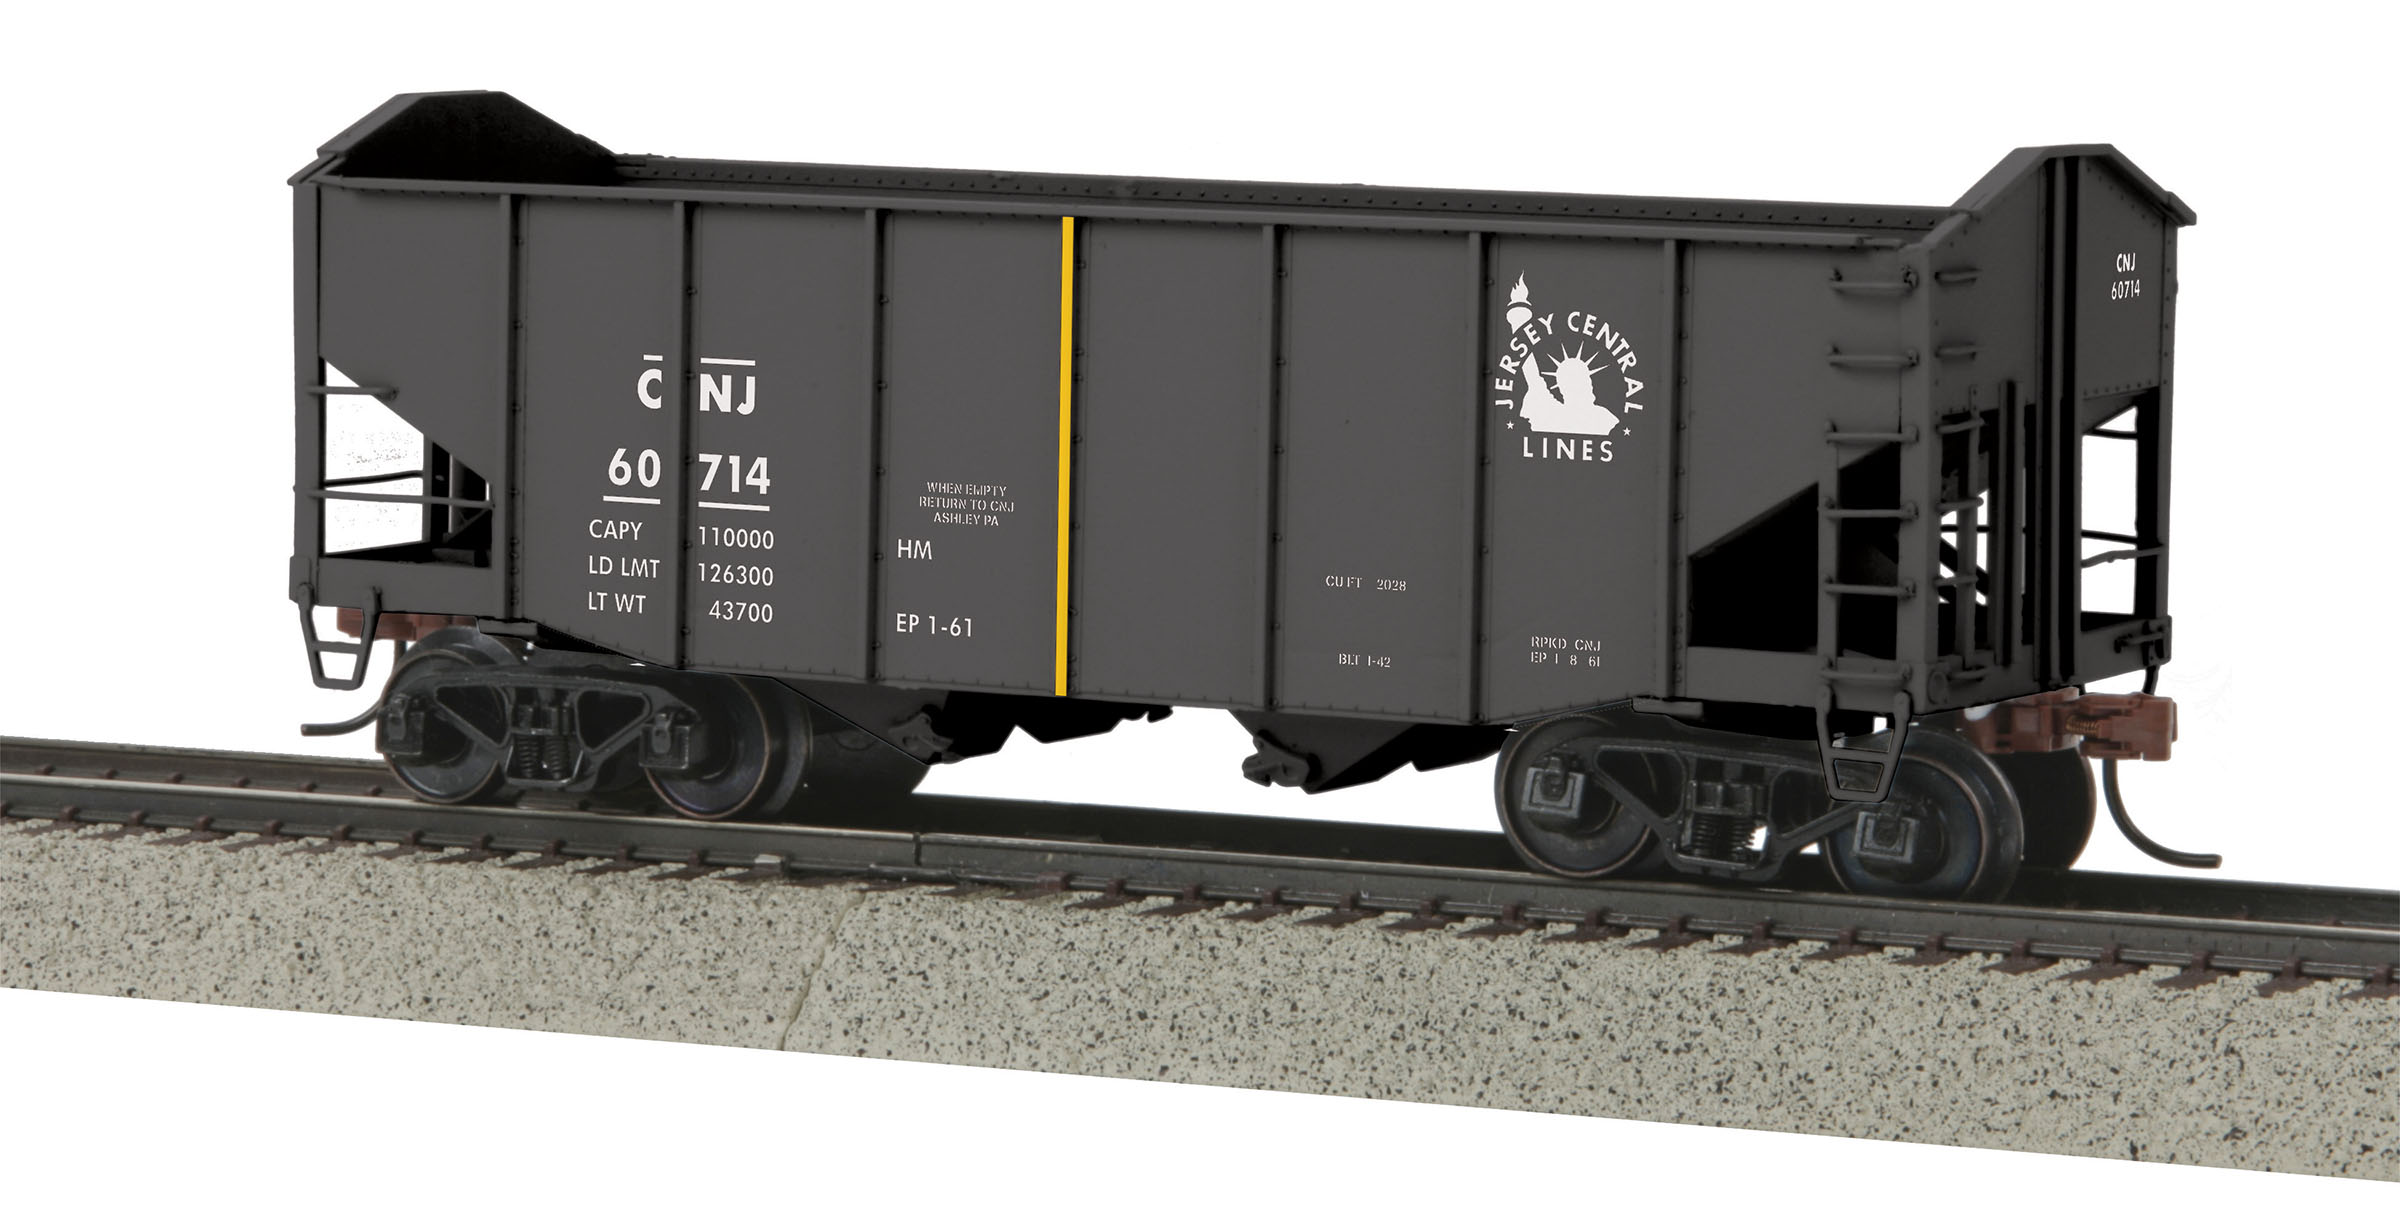 MTH 3575074 2-Bay Fish Belly Hopper Car Scale Wheel CNJ #60714